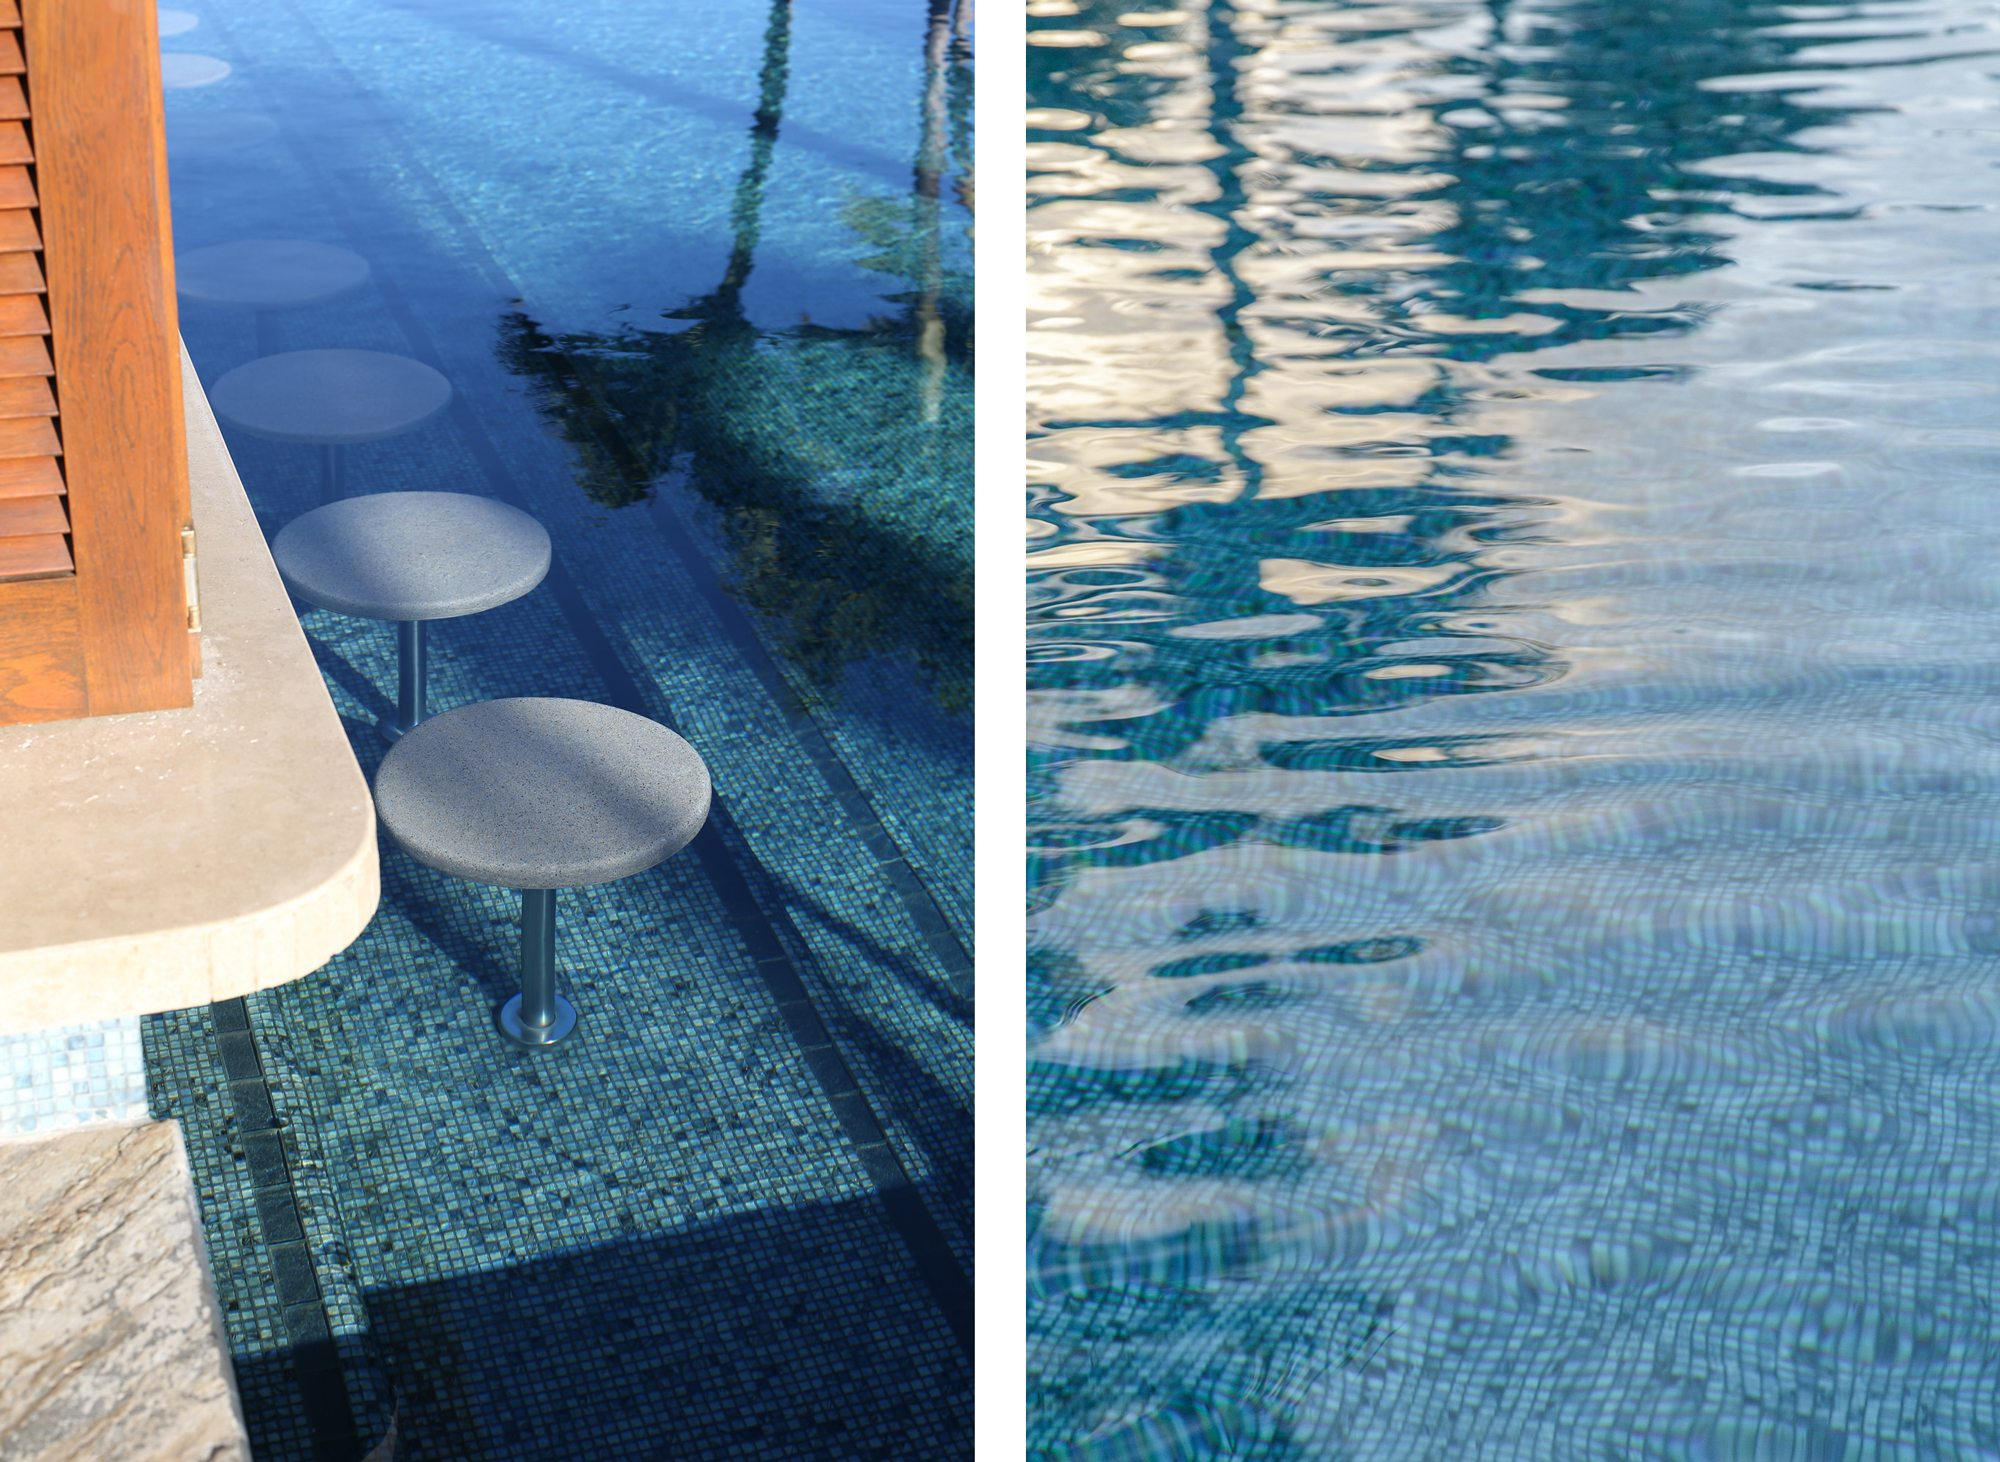 Maui beach bar stools, pool surface comparison